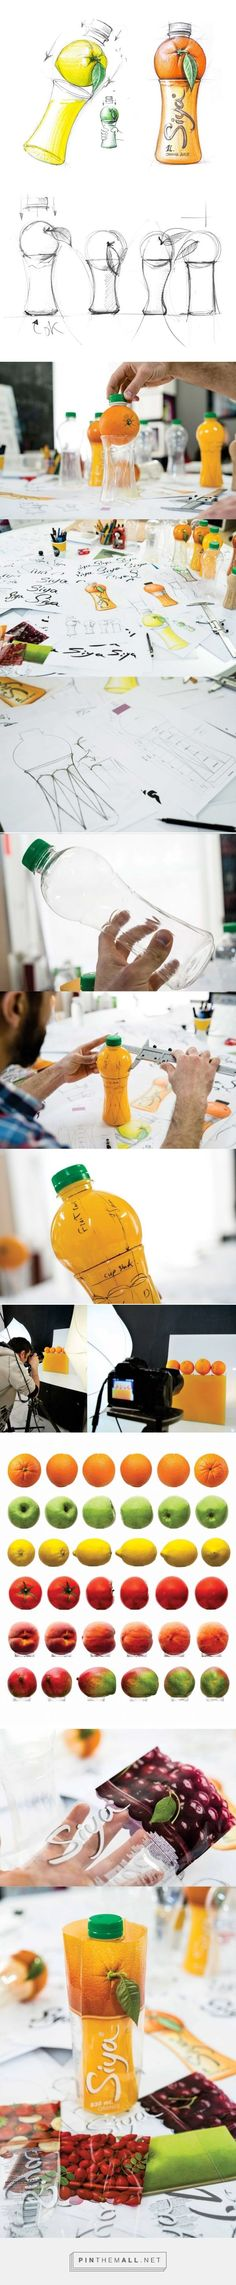 Siya Juice Packaging Development by Backbone Branding -